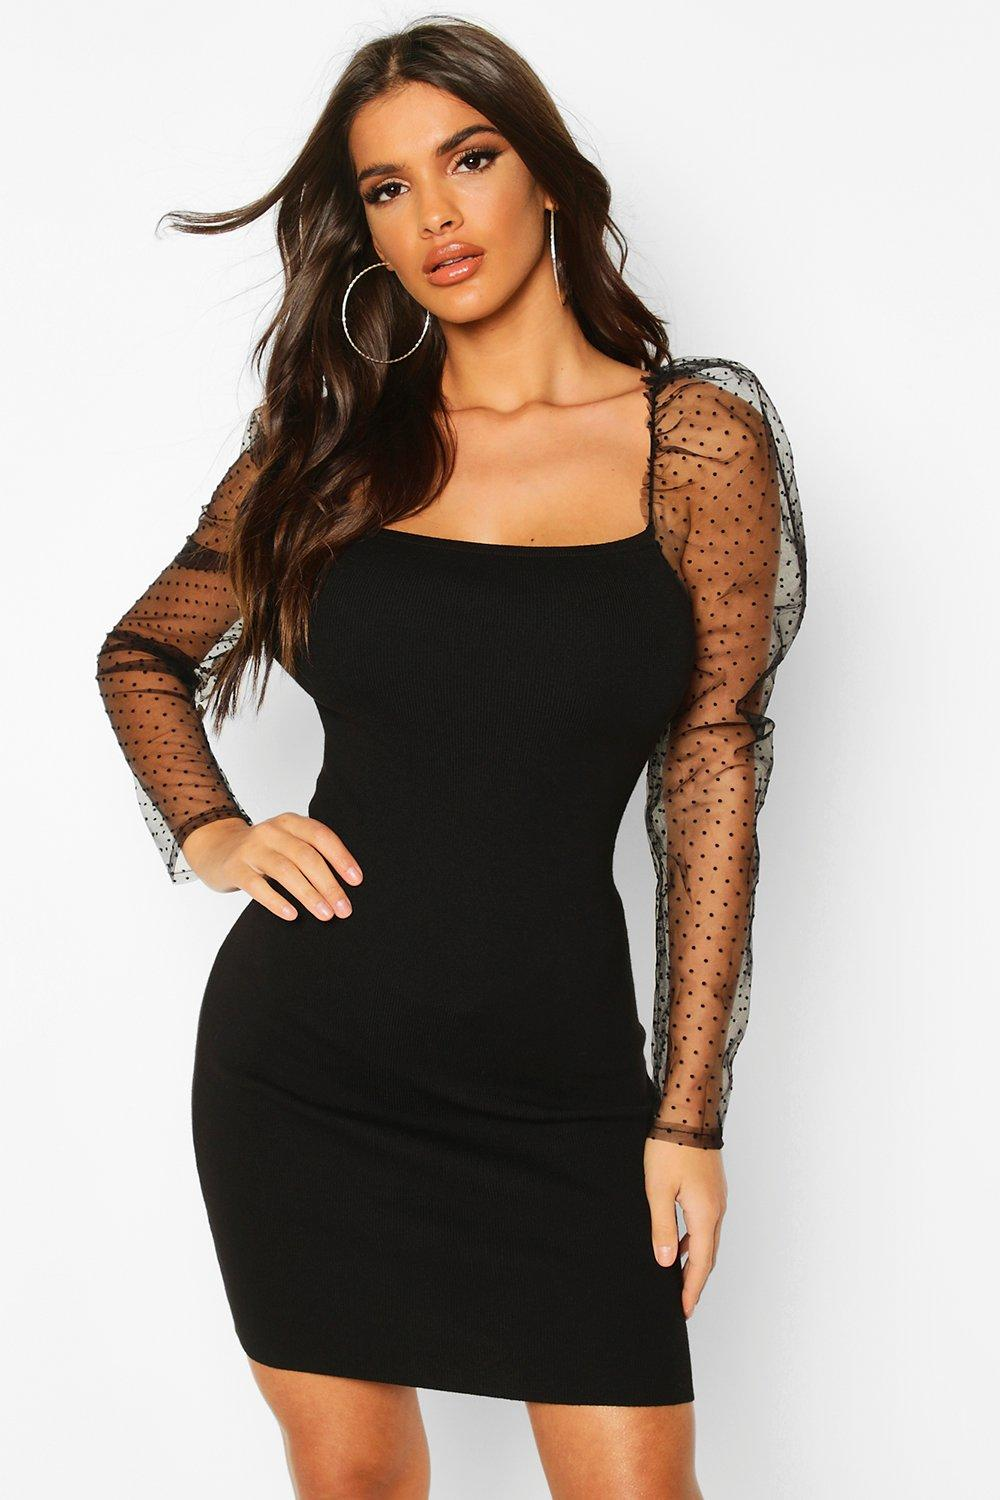 Womens Polka Dot Mesh Puff Sleeve Jumper Dress - black - S, Black - Boohoo.com